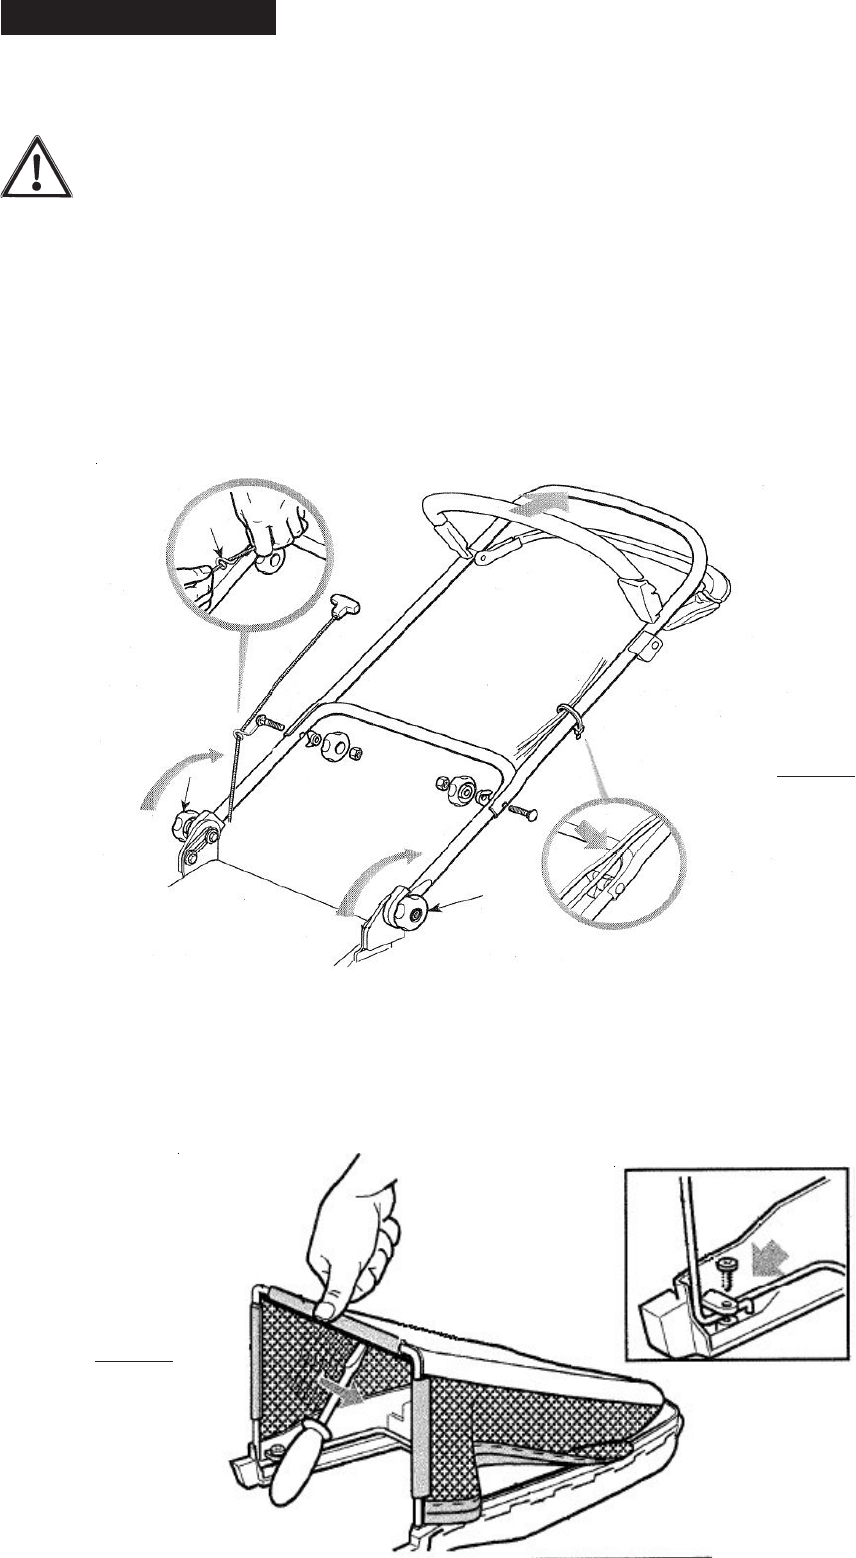 Page 4 of Mountfield Lawn Mower SP474 User Guide